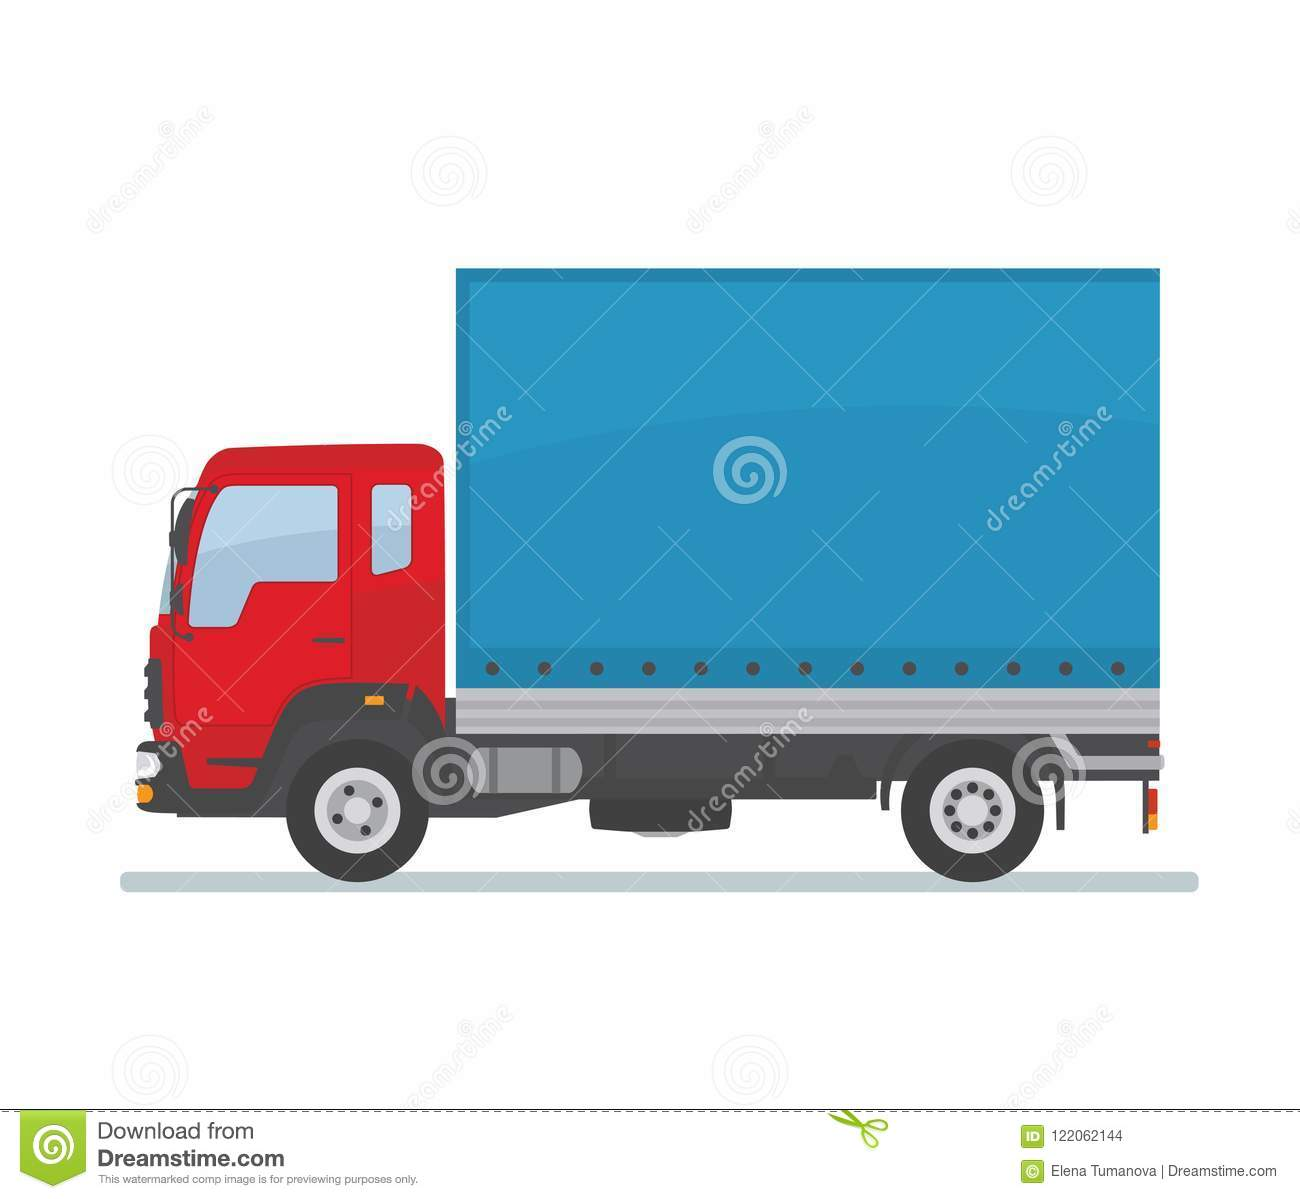 Red covered truck isolated on white background. Transport services, logistics and freight of goods.